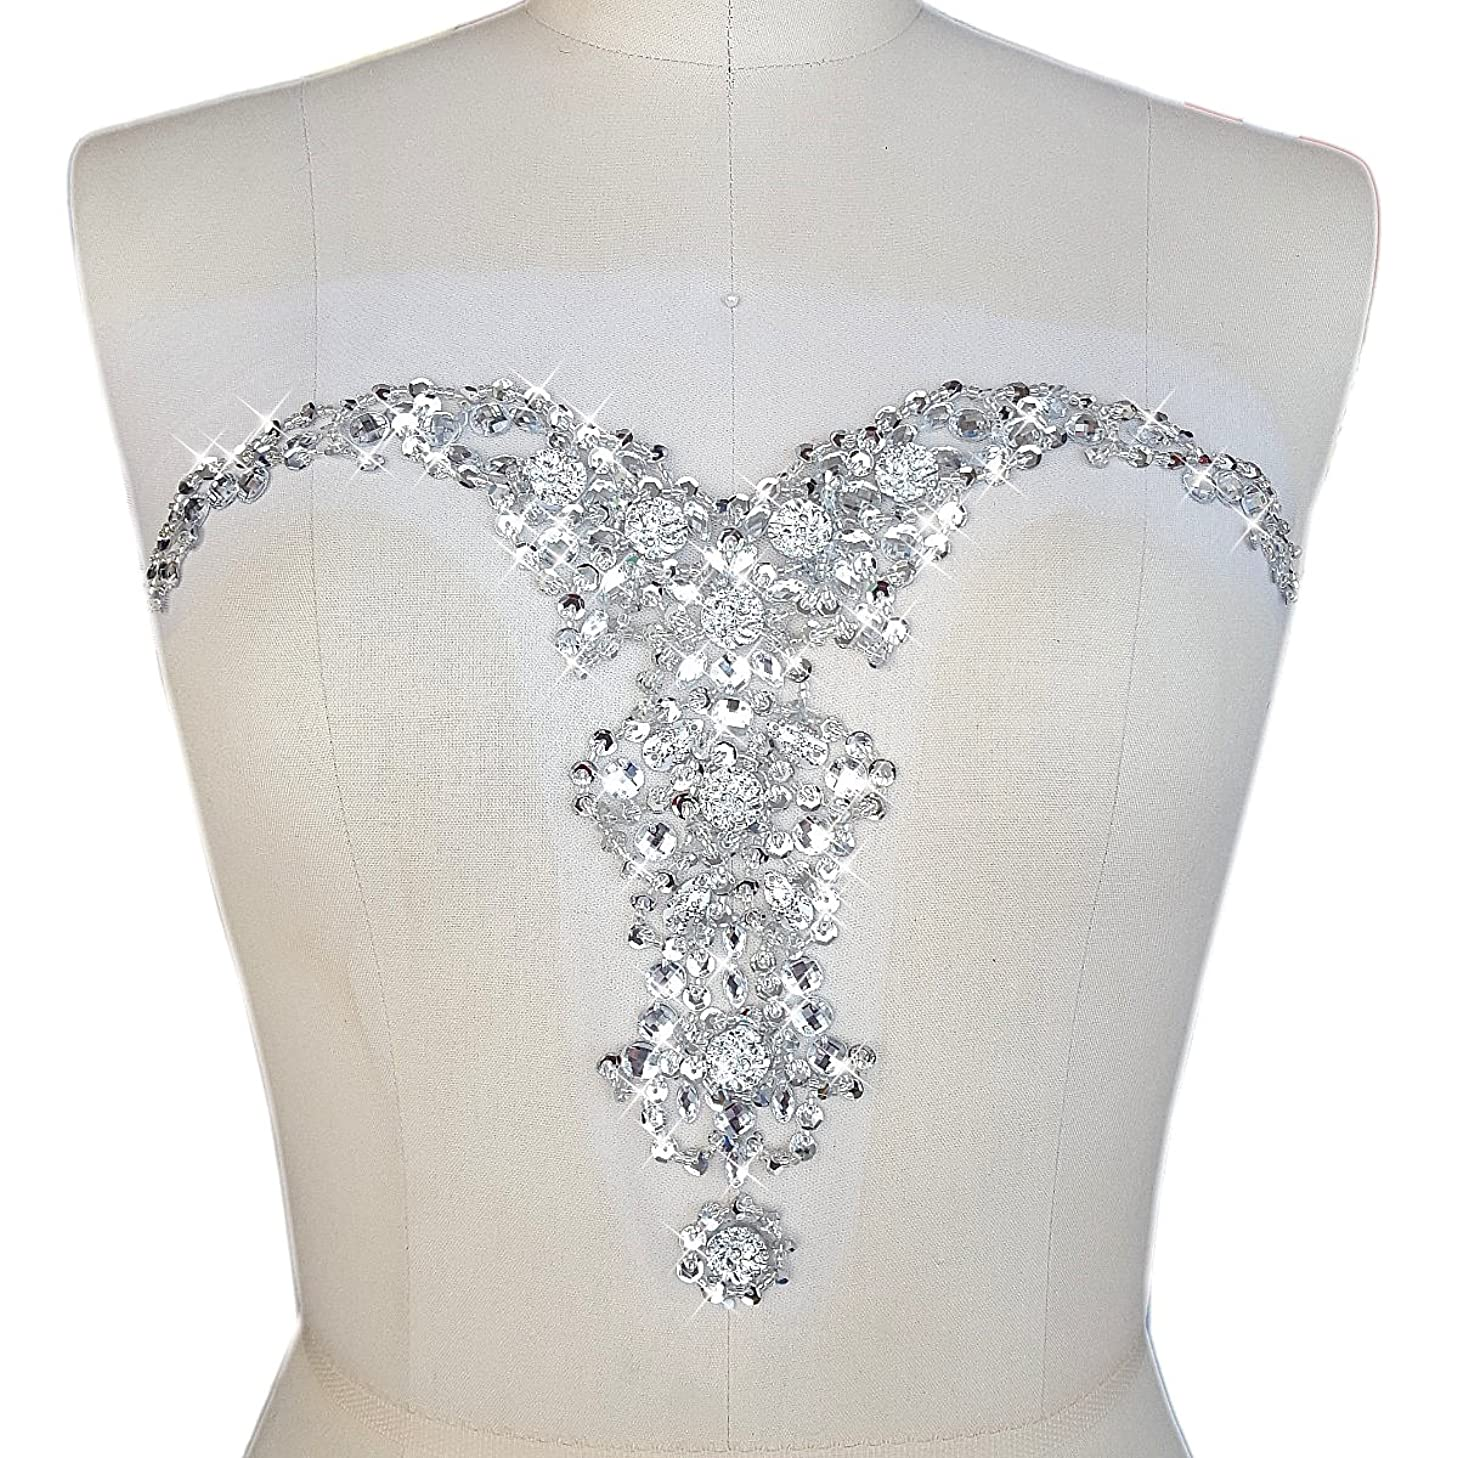 Sparkle Elegant Handcrafted Crystals V Neck Color Rhinestones Sew on Applique Bridal Belt Wedding Beaded Patch DIY for Women Gown Evening Prom Clothes Decoration (Silver)